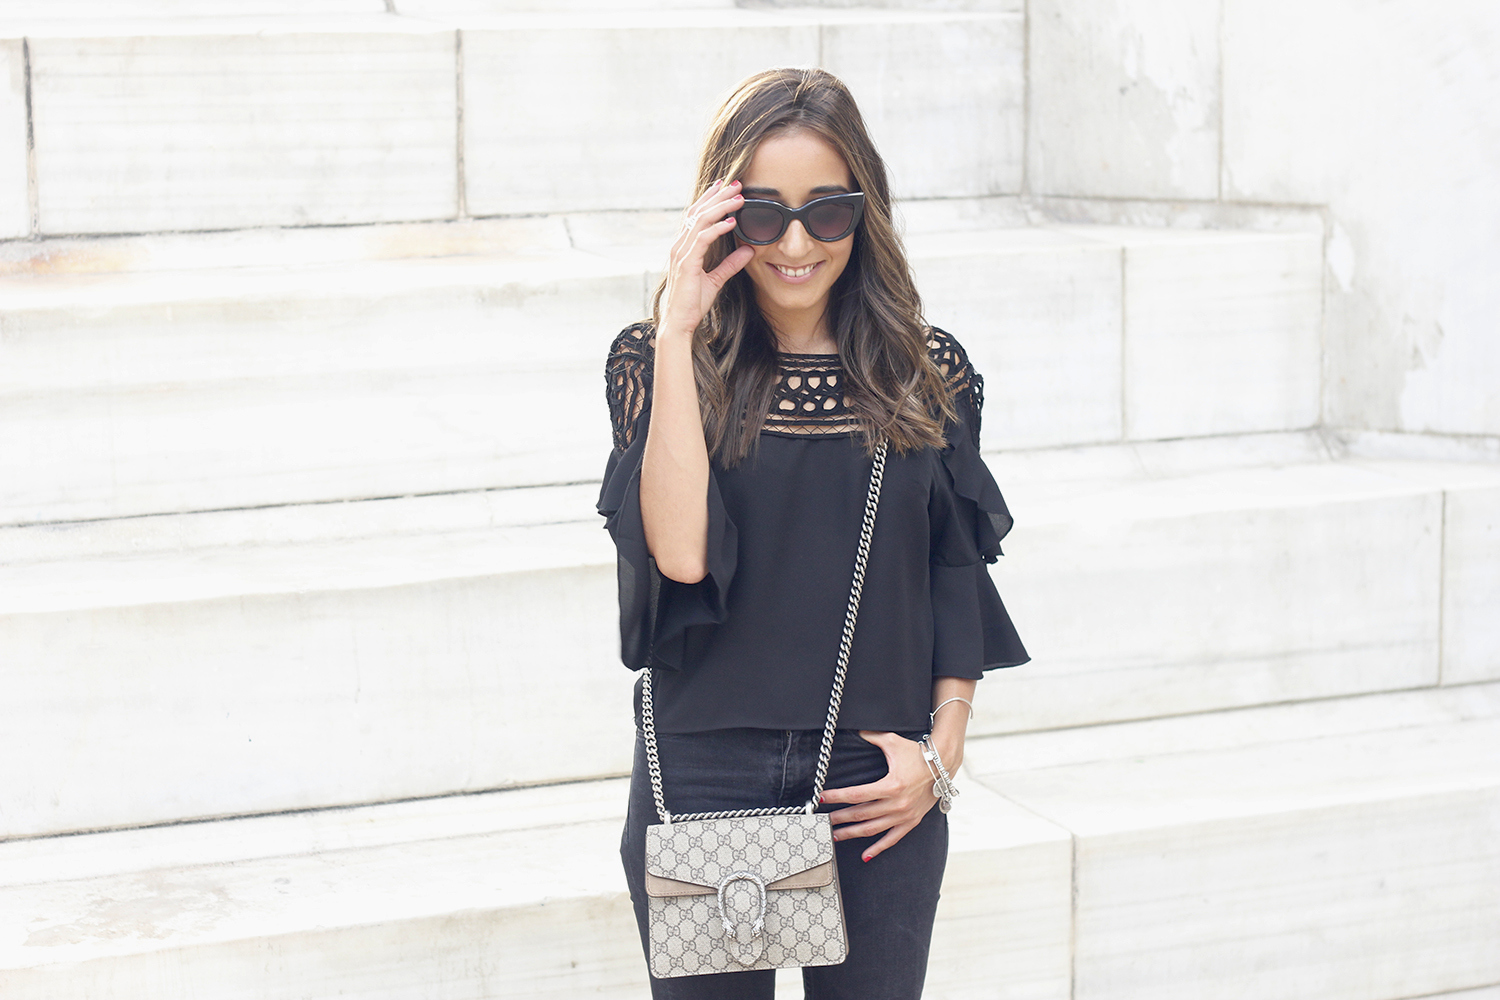 black top black jeans heels gucci bag sunnies outfit fashion style06